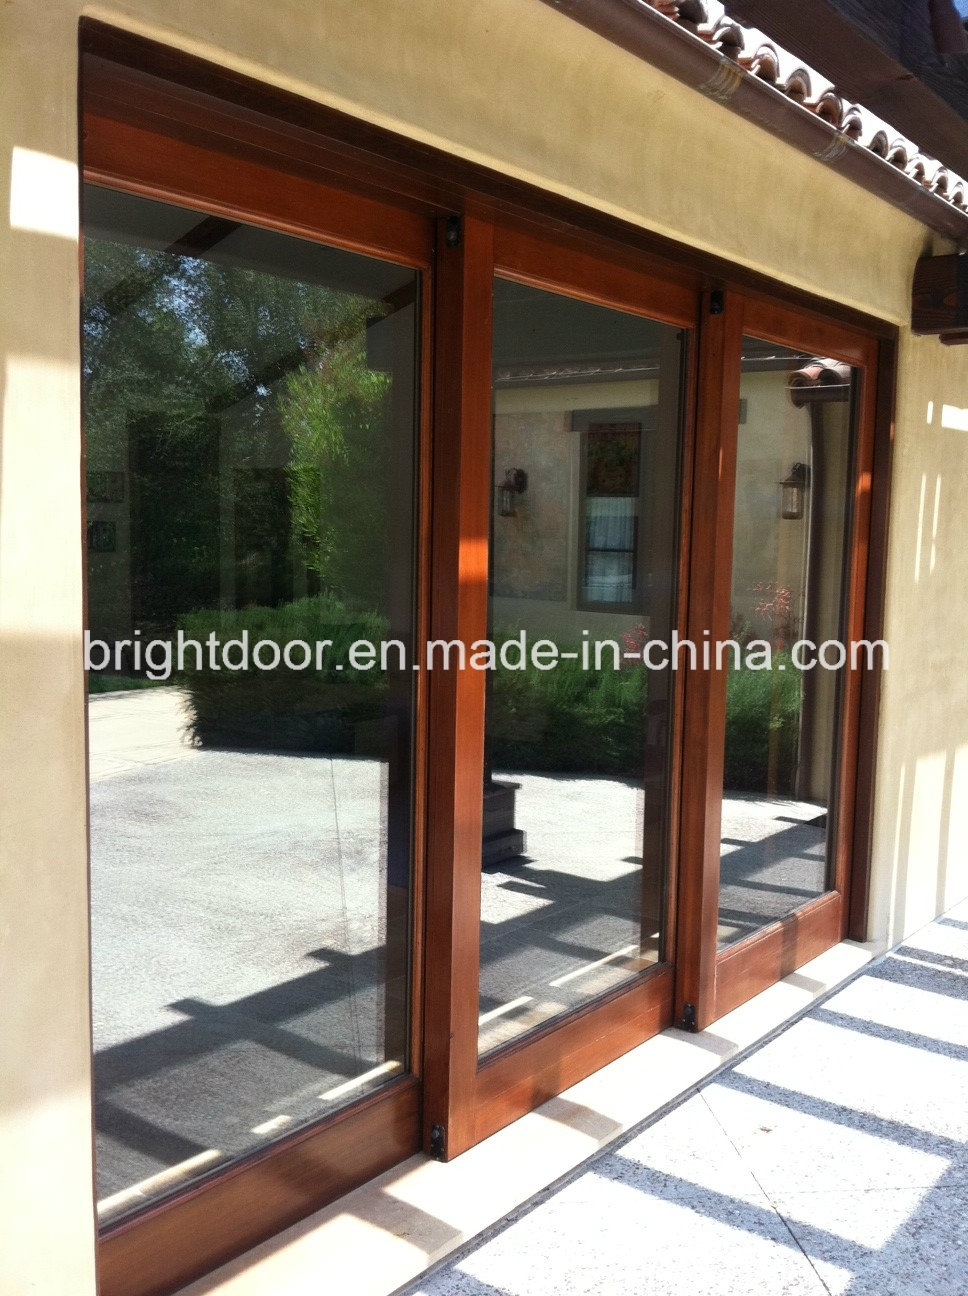 3 Door Sliding Glass Doors3 Door Sliding Glass Doors